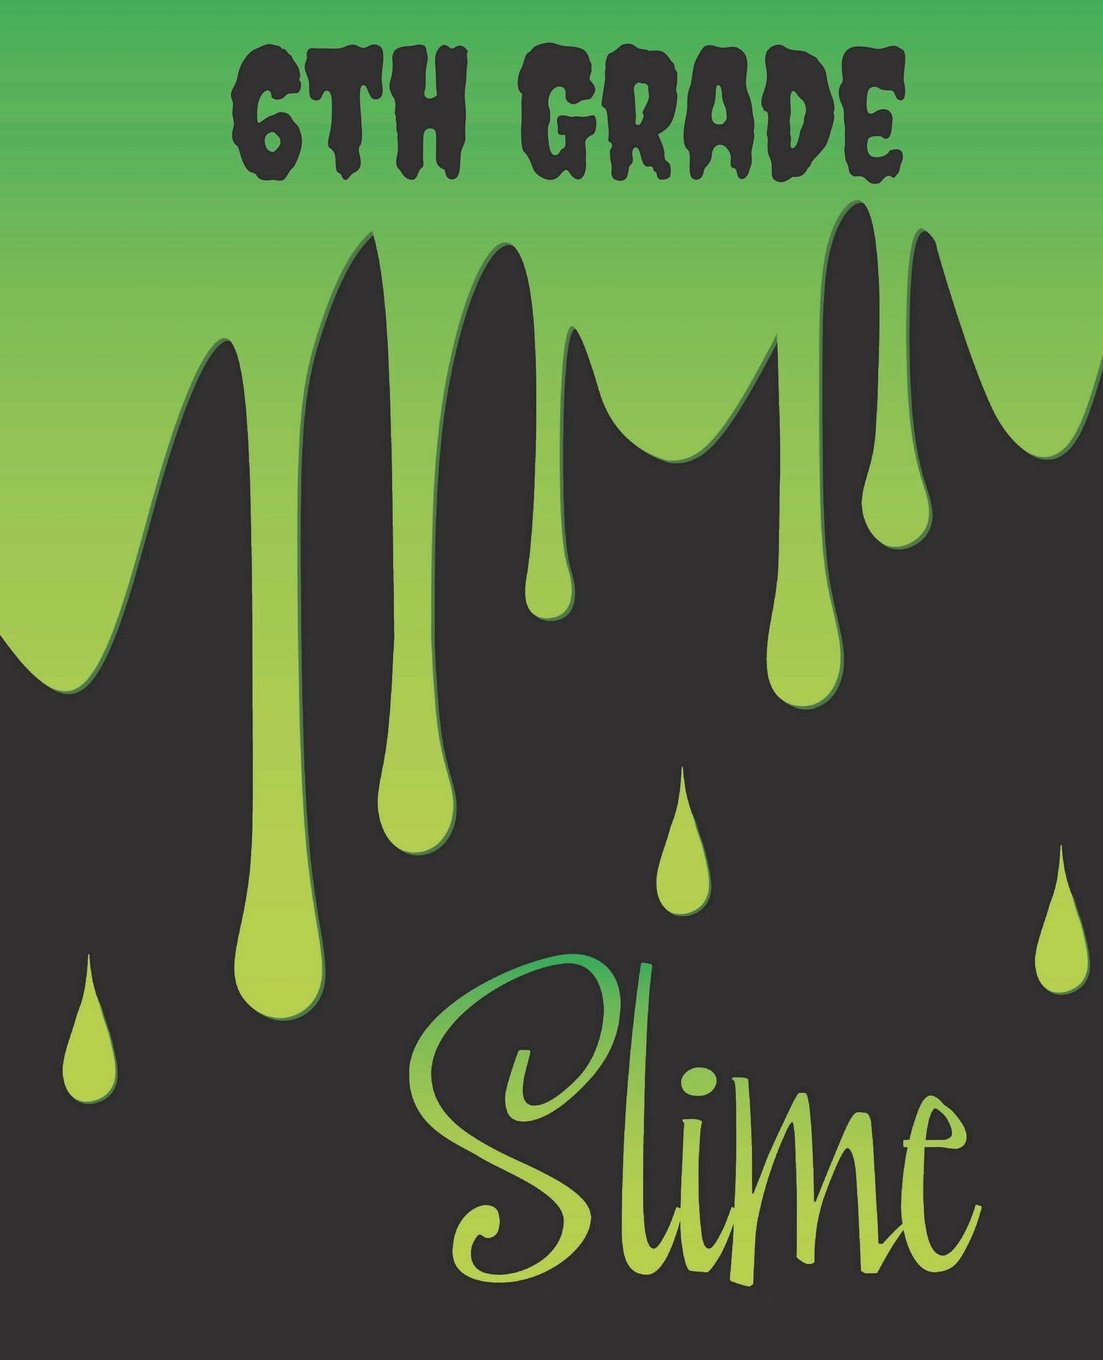 Download 6th Grade Composition Notebook: Slime - Back To School Supplies - Wide Ruled Paper Journal - 200 Pages - For Sixth Grade Boys & Girls That Love Slime ebook